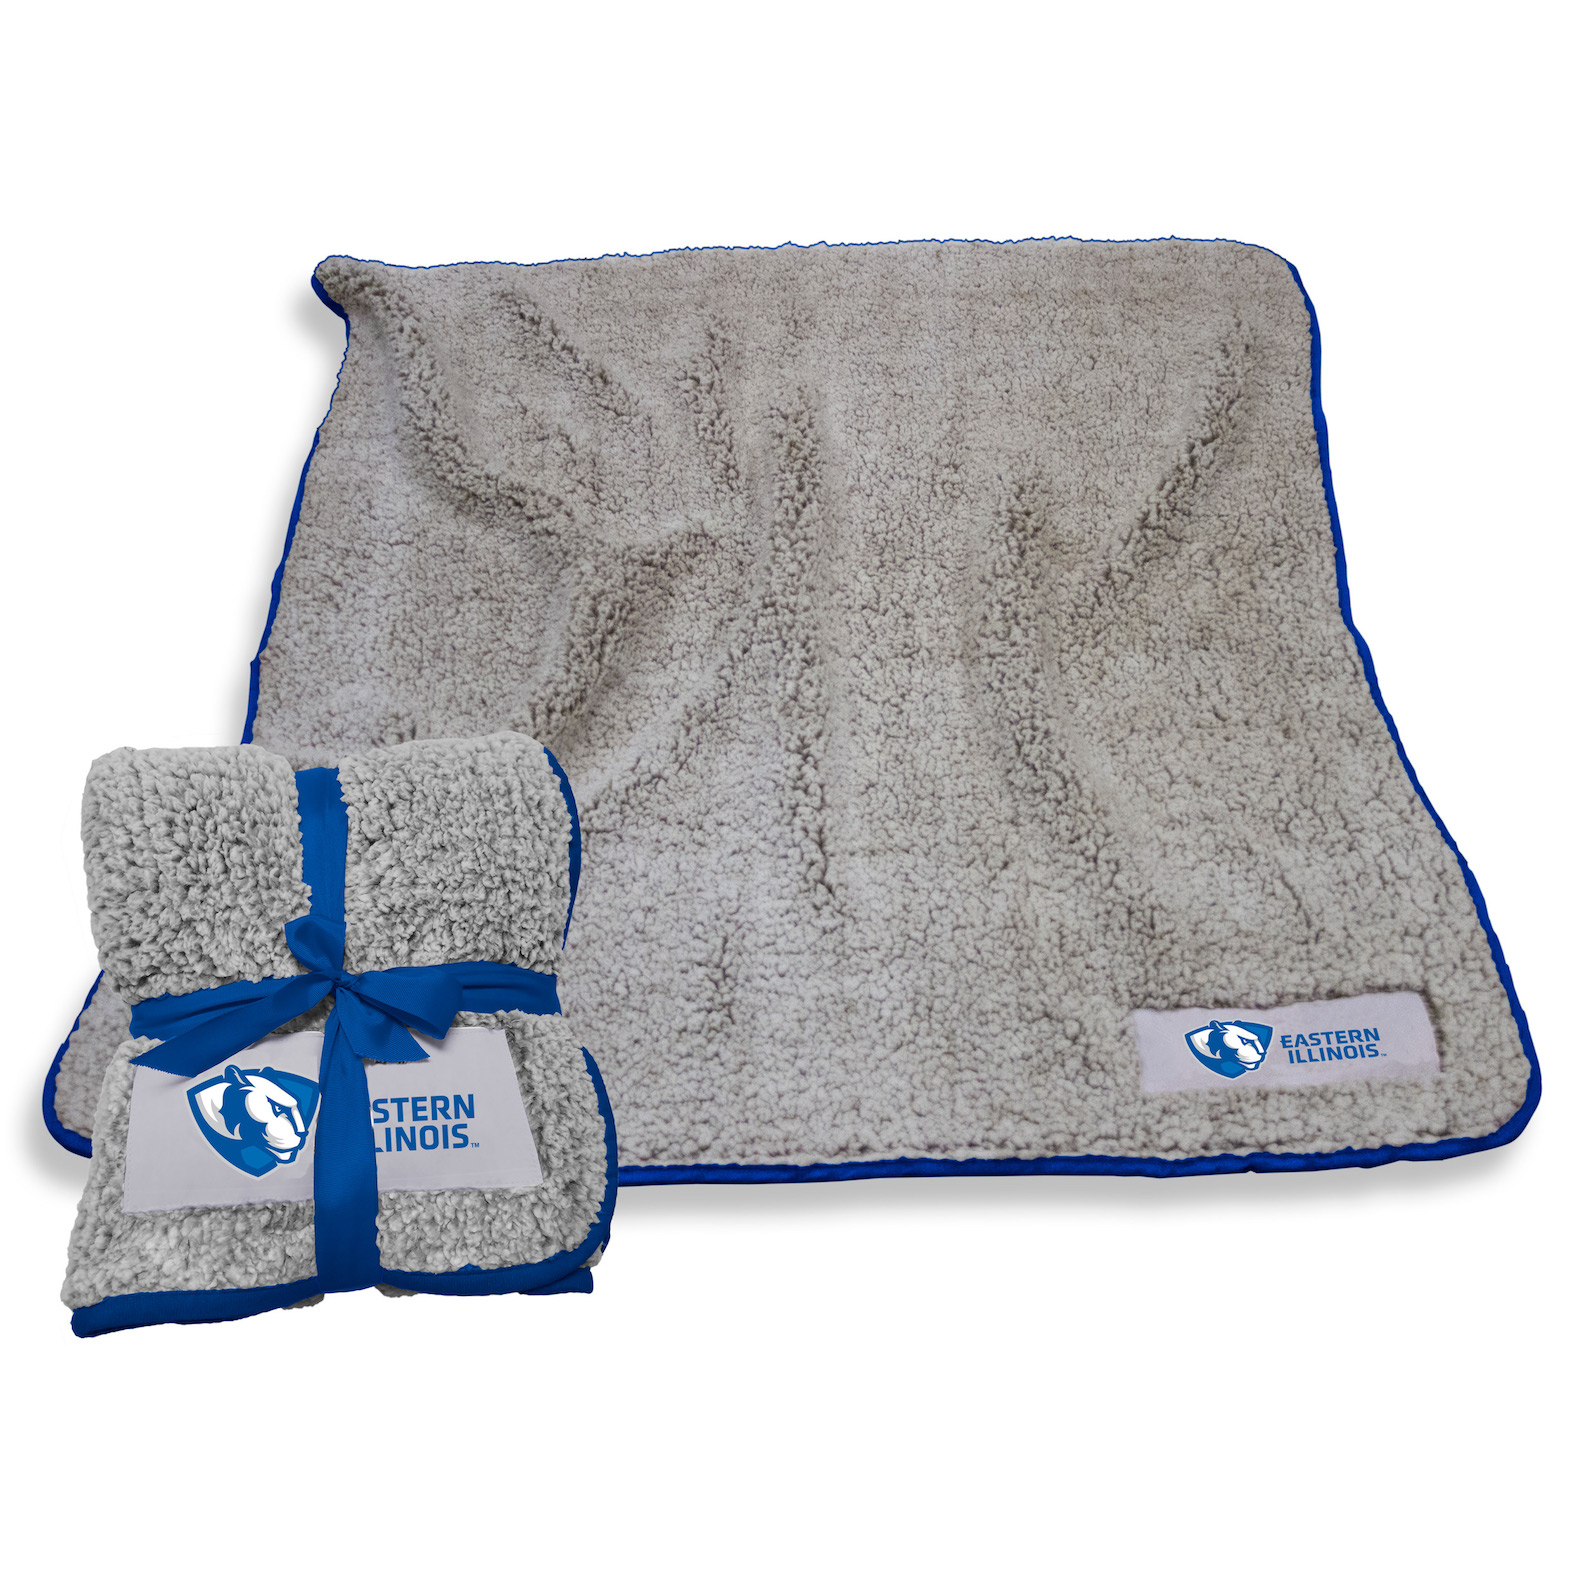 Cover Image For EASTERN ILLINOIS PANTHER LOGO SHERPA BLANKET